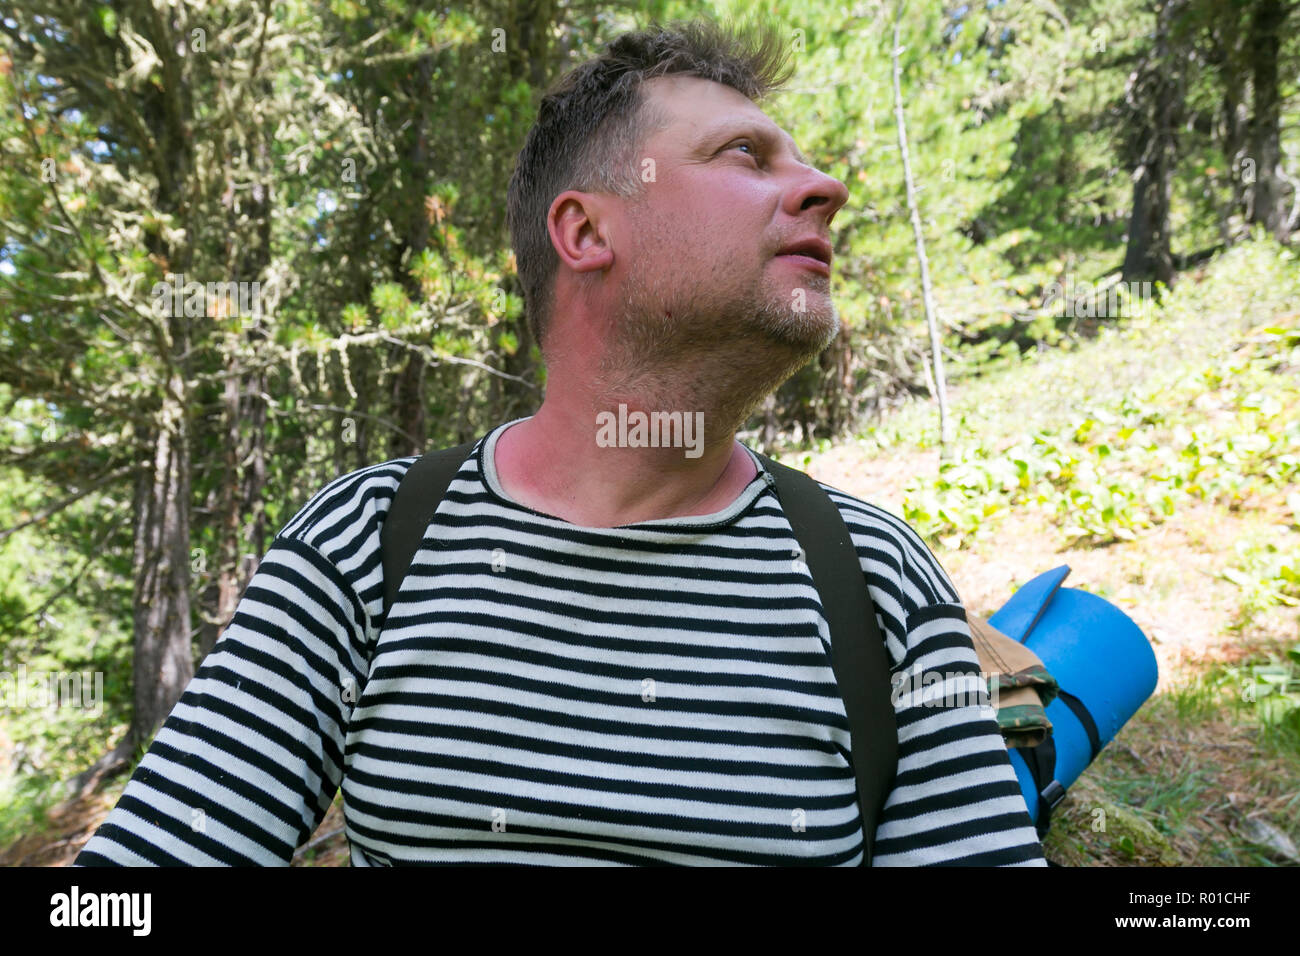 Tumor and redness on the neck of a man from the bite of mosquitoes and midges in the forest. - Stock Image